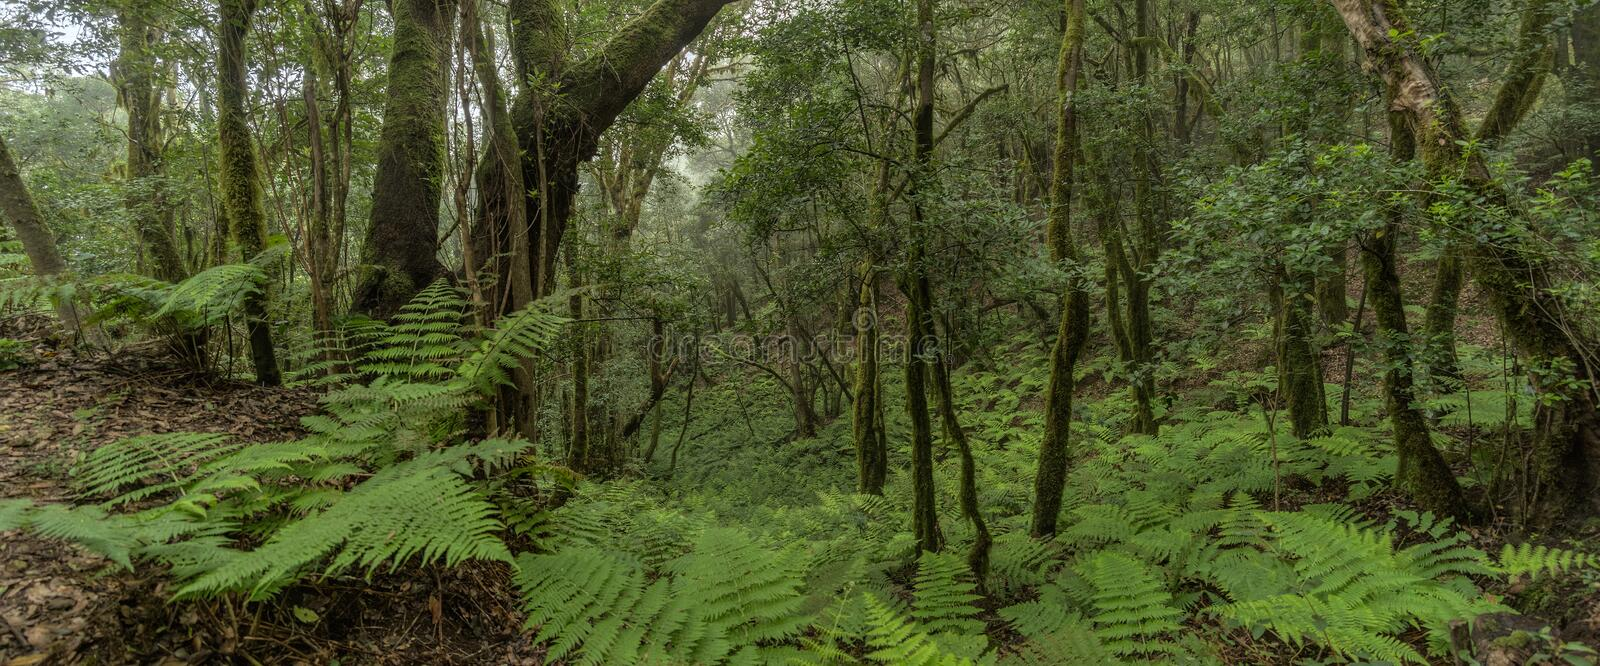 Super wide angle panorama. Relict forest on the slopes of the Garajonay National Park mountains. Giant Laurels and Tree Heather. Along narrow winding paths stock photography